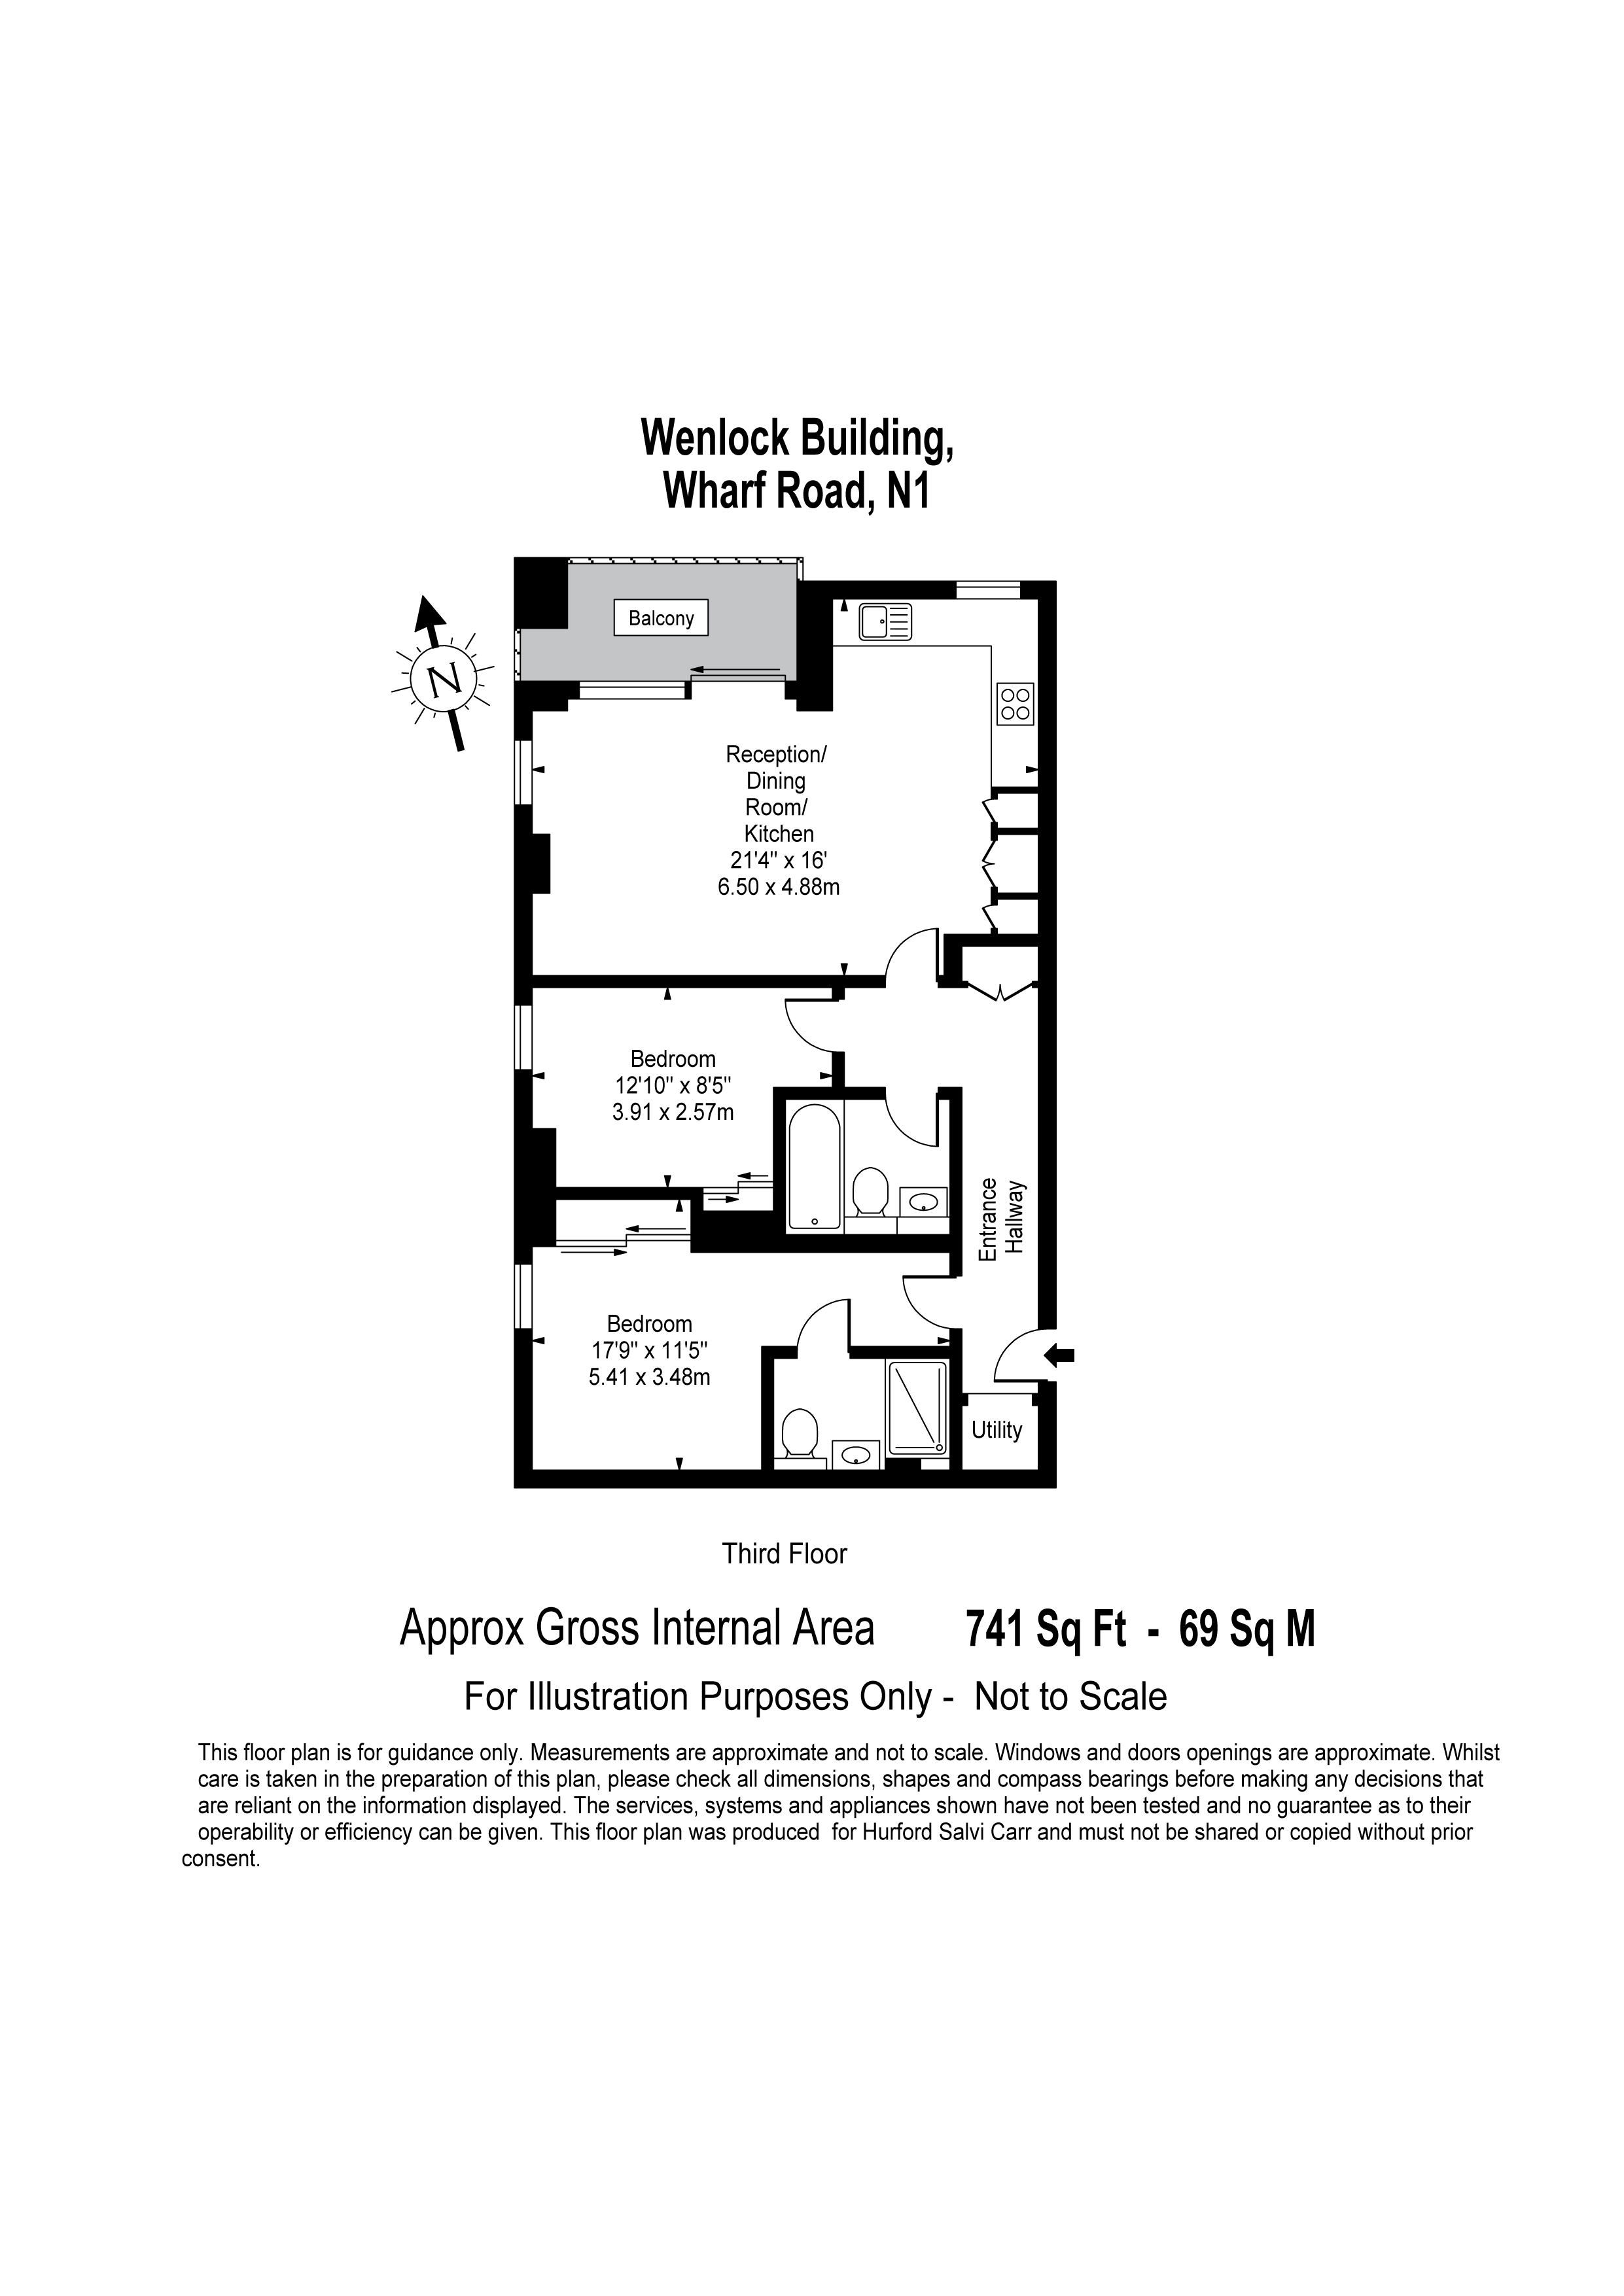 Wenlock Building, 56 Wharf Road, London, N1 floorplan